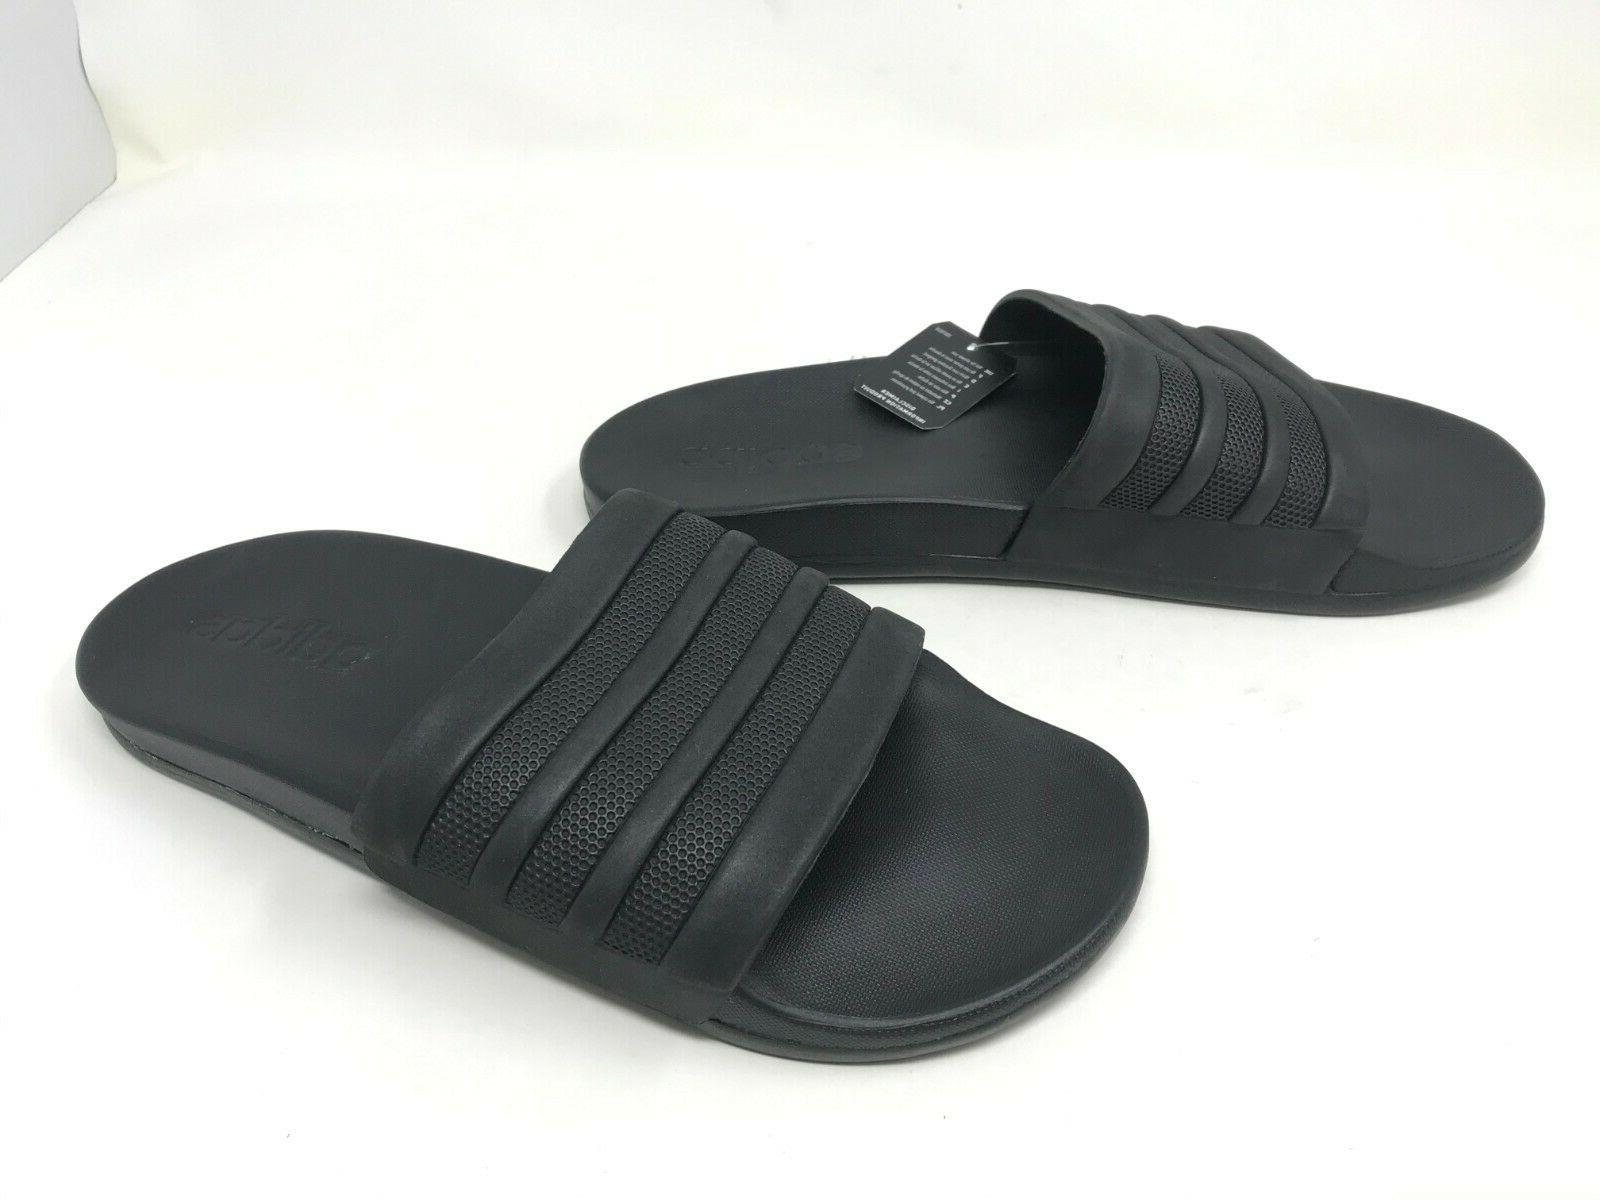 mens s82137 adilette comfort black slides sandals